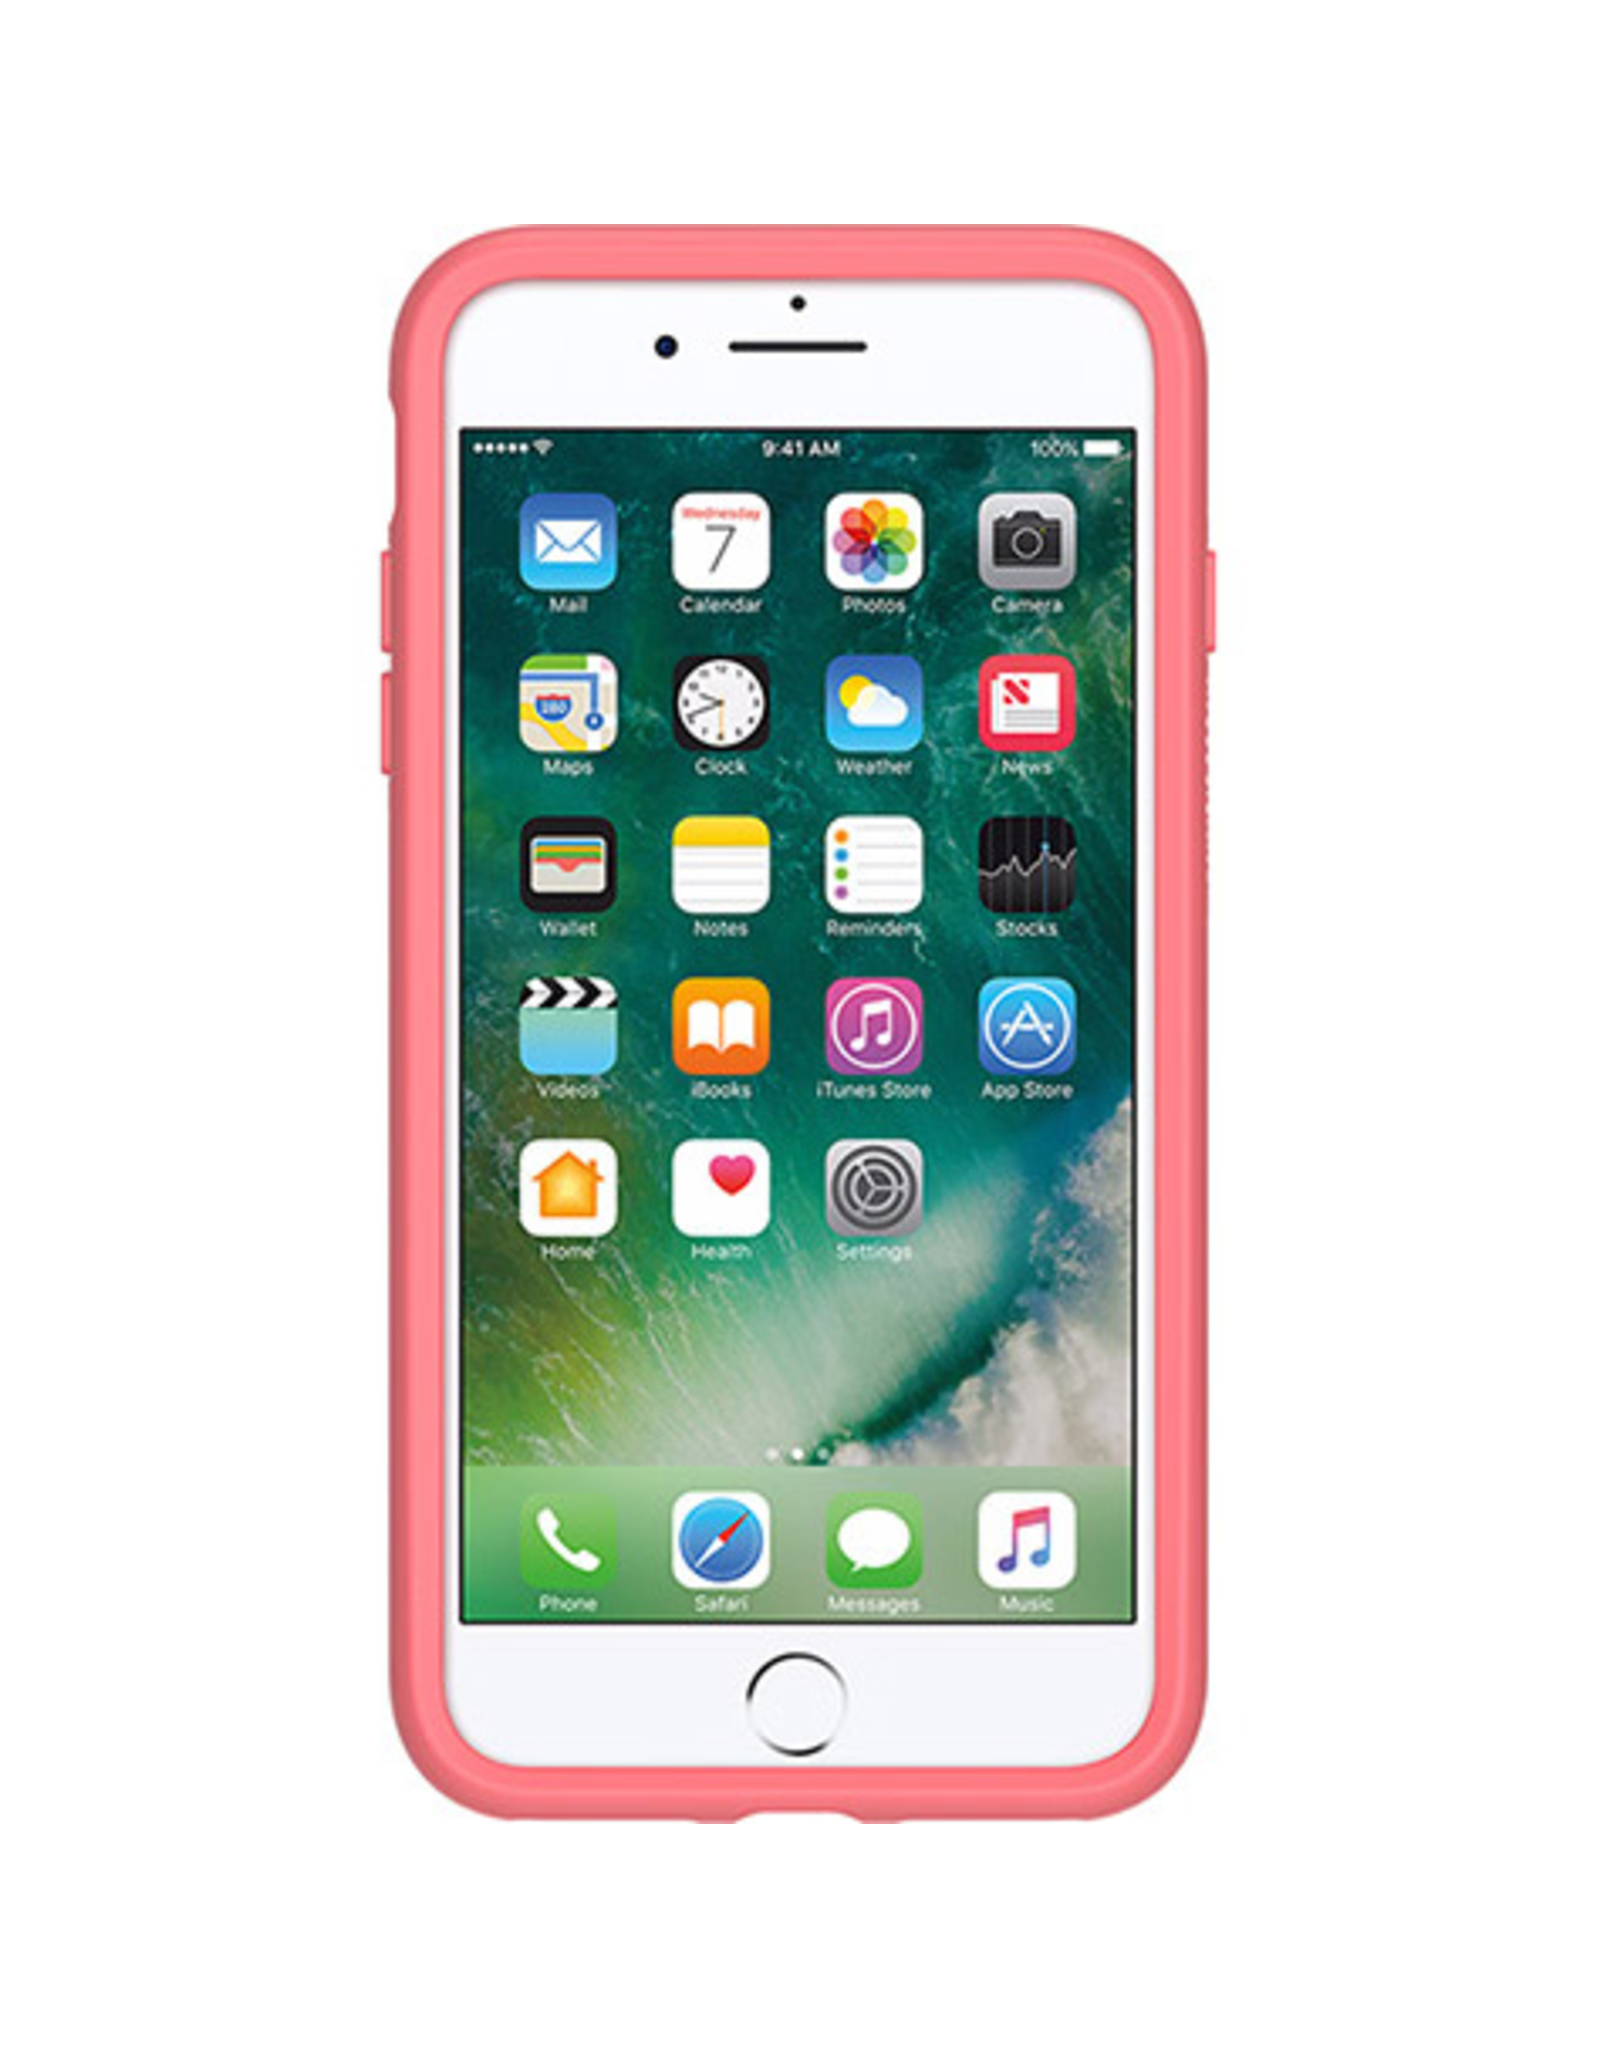 Otterbox OtterBox Symmetry Case suits iPhone 7 Plus/8 plus - Mint/Candy Pink